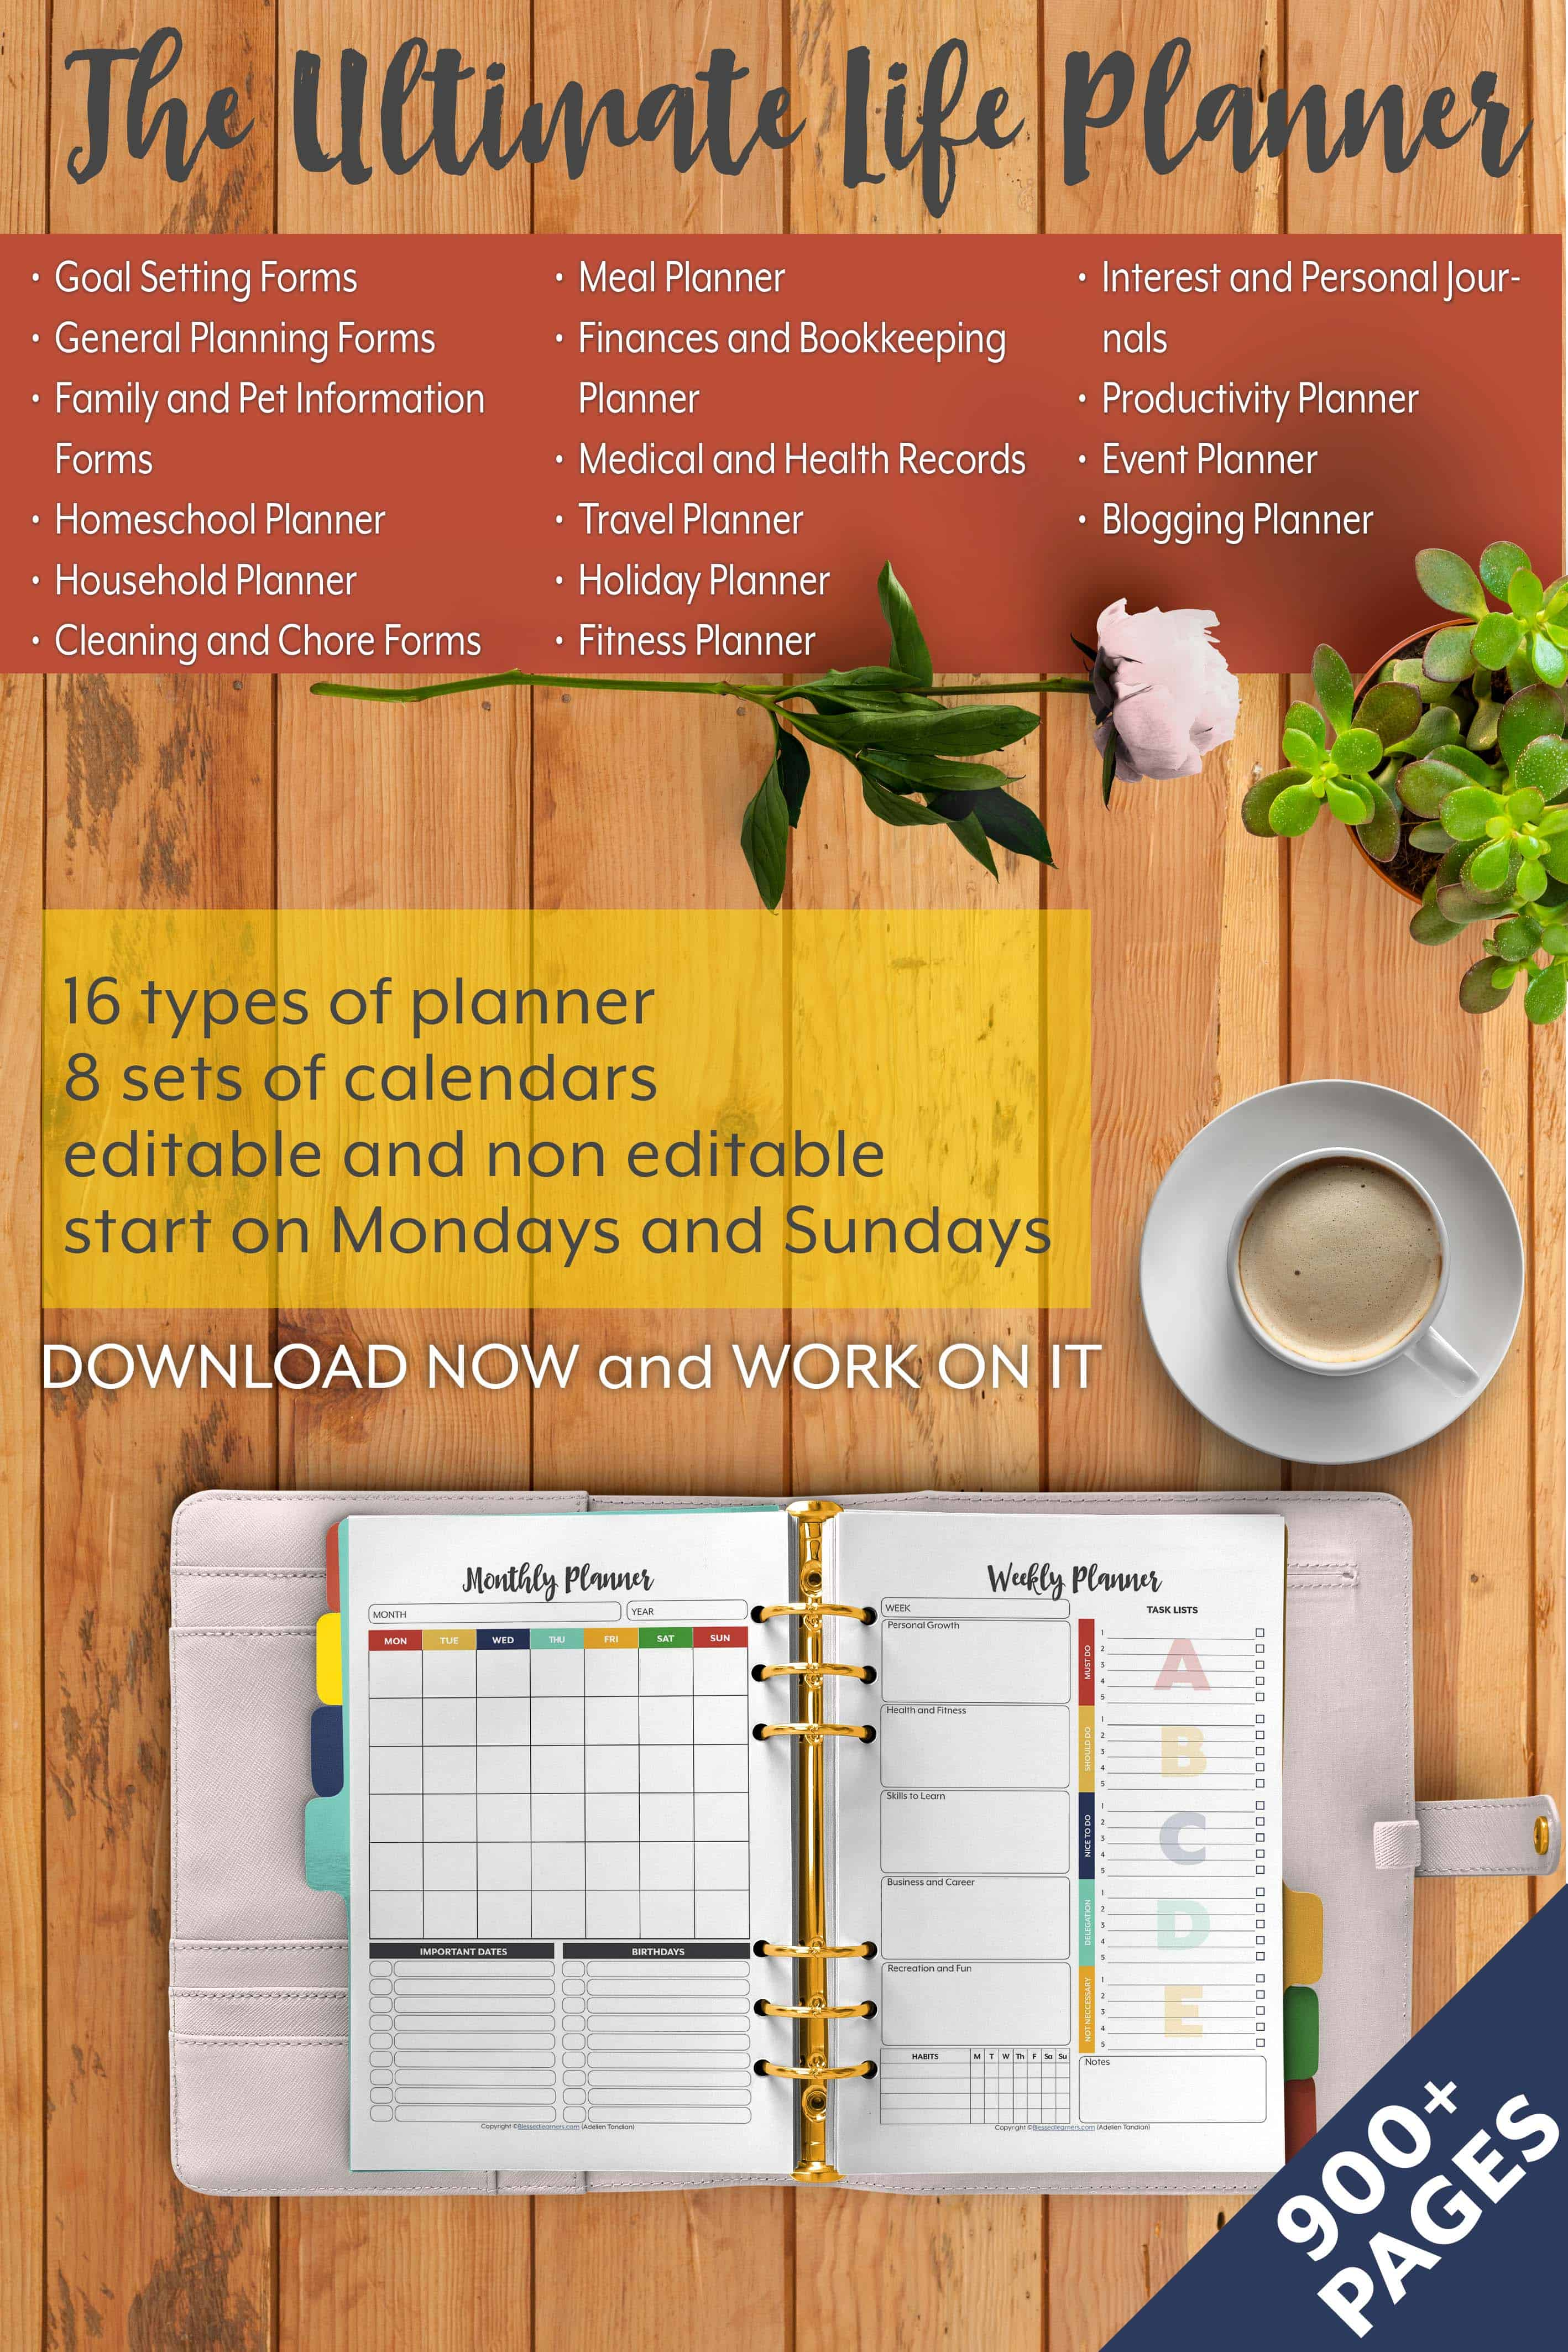 The Ultimate Life Planner Organizer for Moms is the perfect solution to getting most aspects of your home-and-work life well organized. A total of 450+ printable Calendar pages you can customize to use are included in the digital file. #Planner #Printable #TimeManagement #Organizer